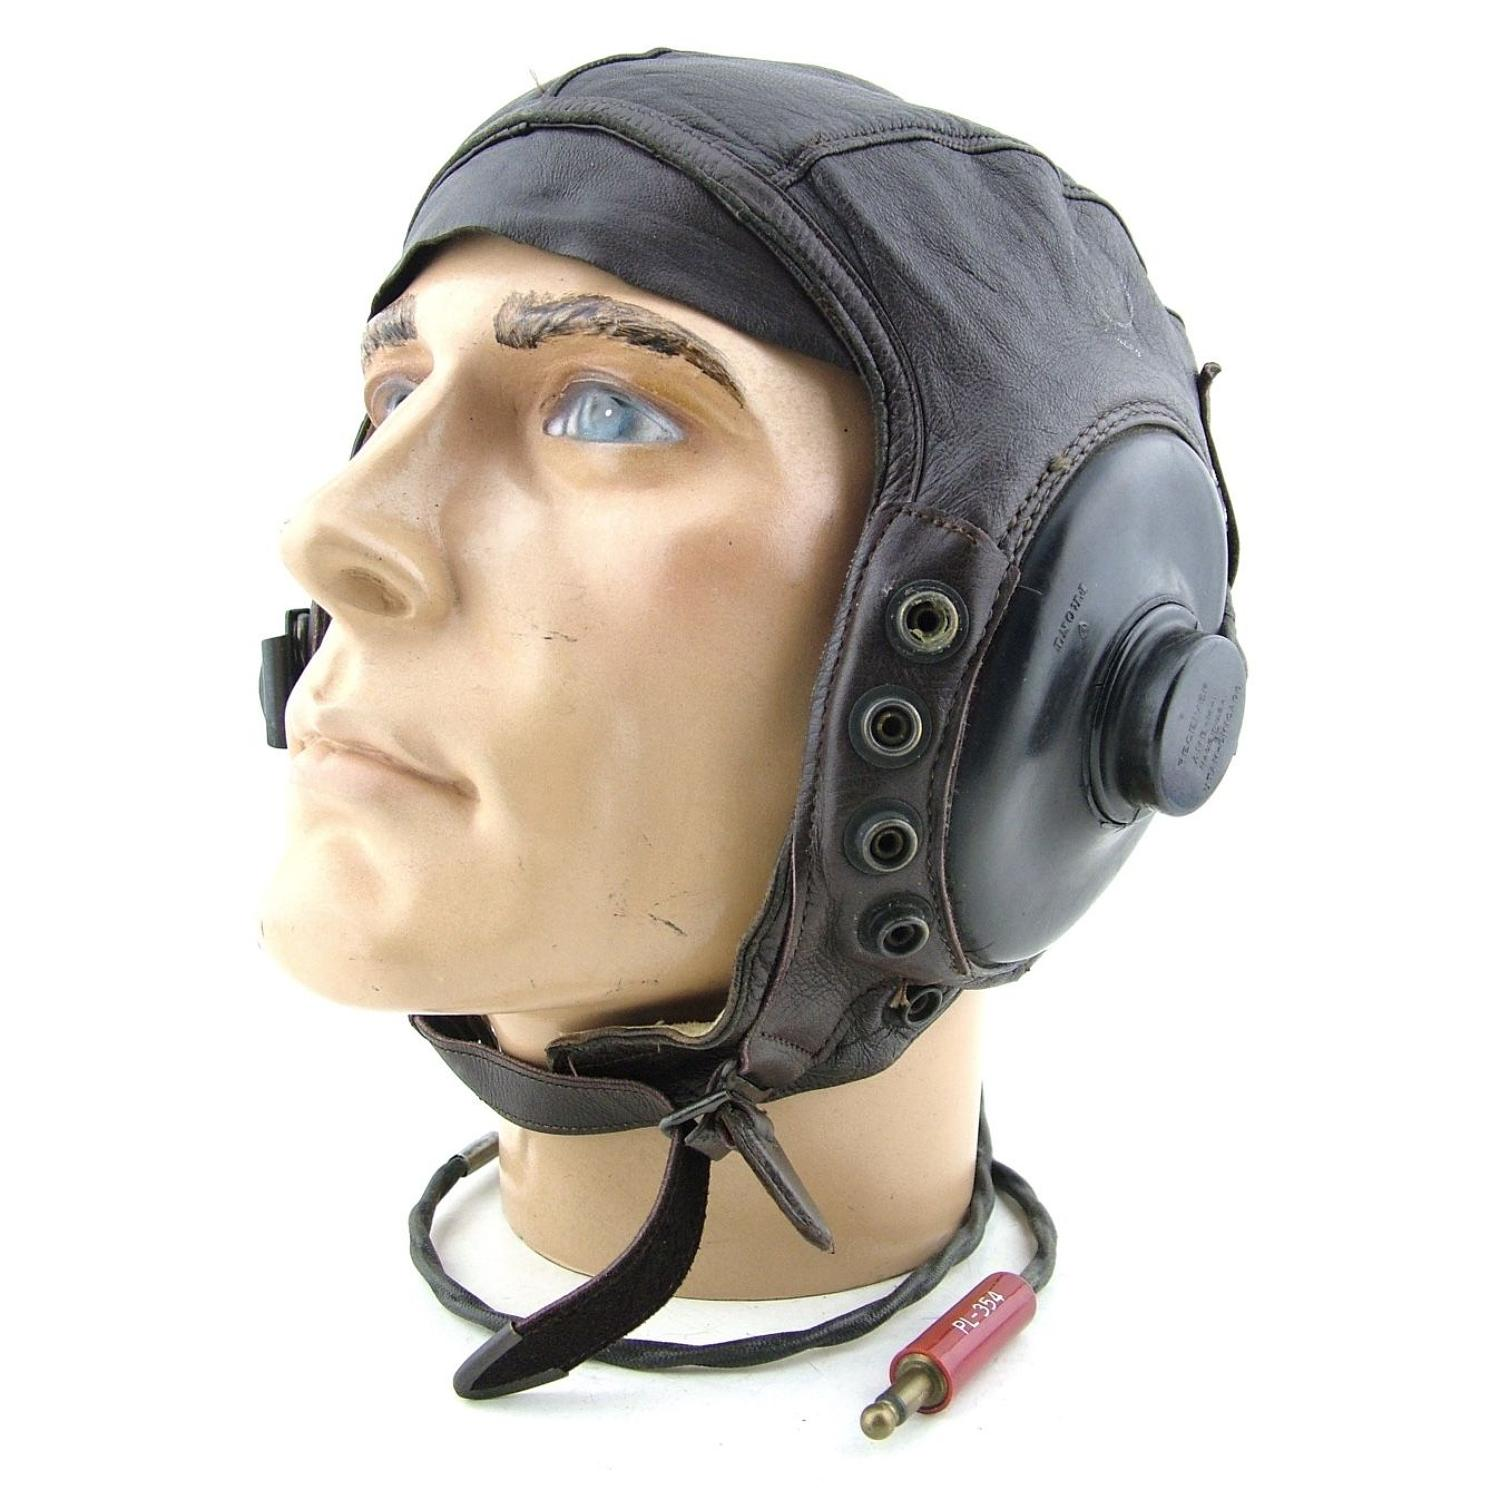 USAAF A-11 intermediate flying helmet, wired